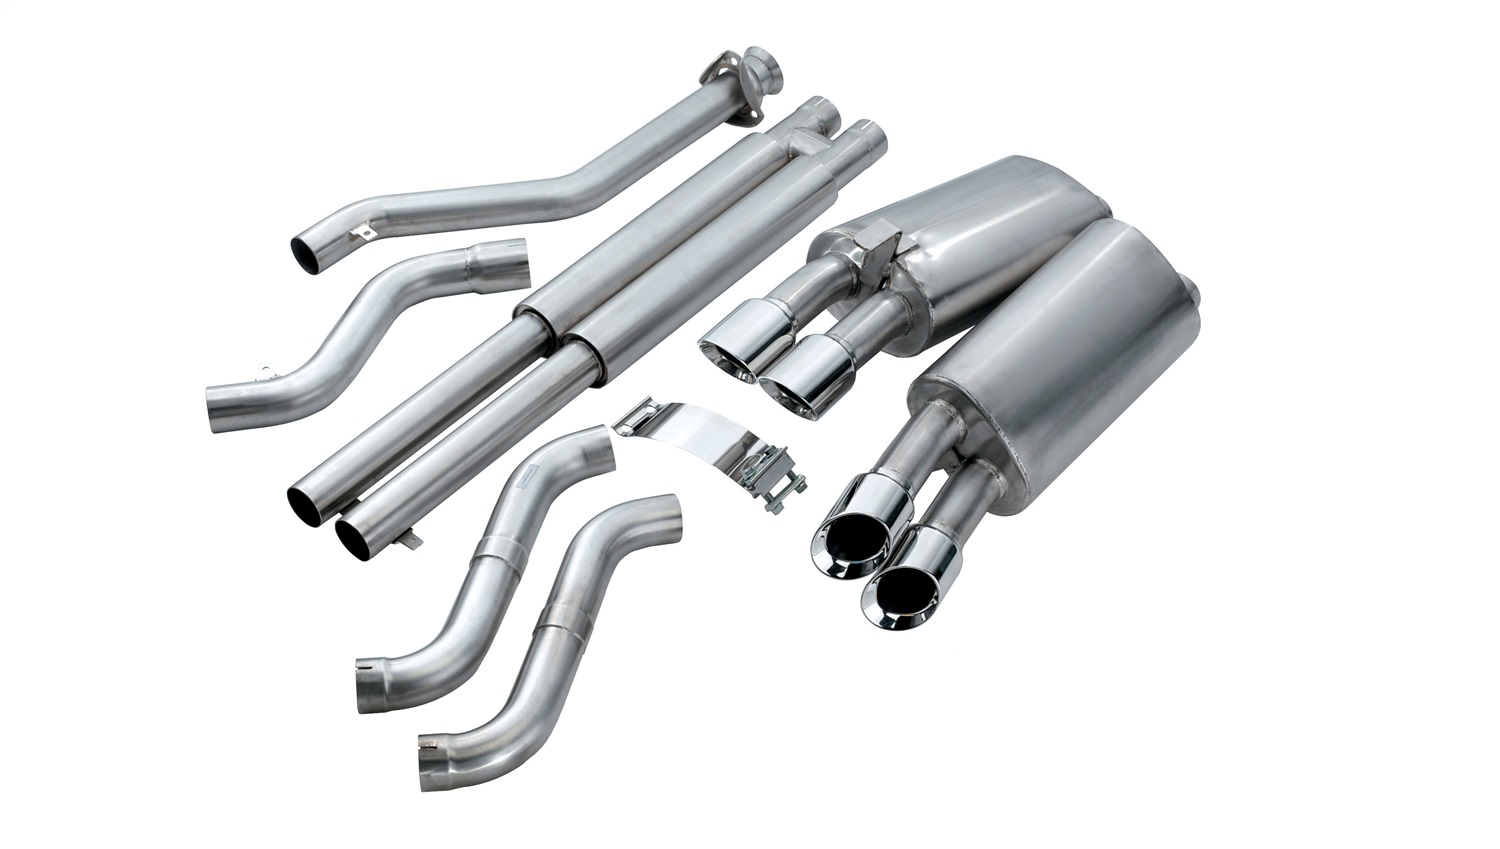 Corsa Performance 14117 Sport Cat-Back Exhaust System Fits 90-95 Corvette